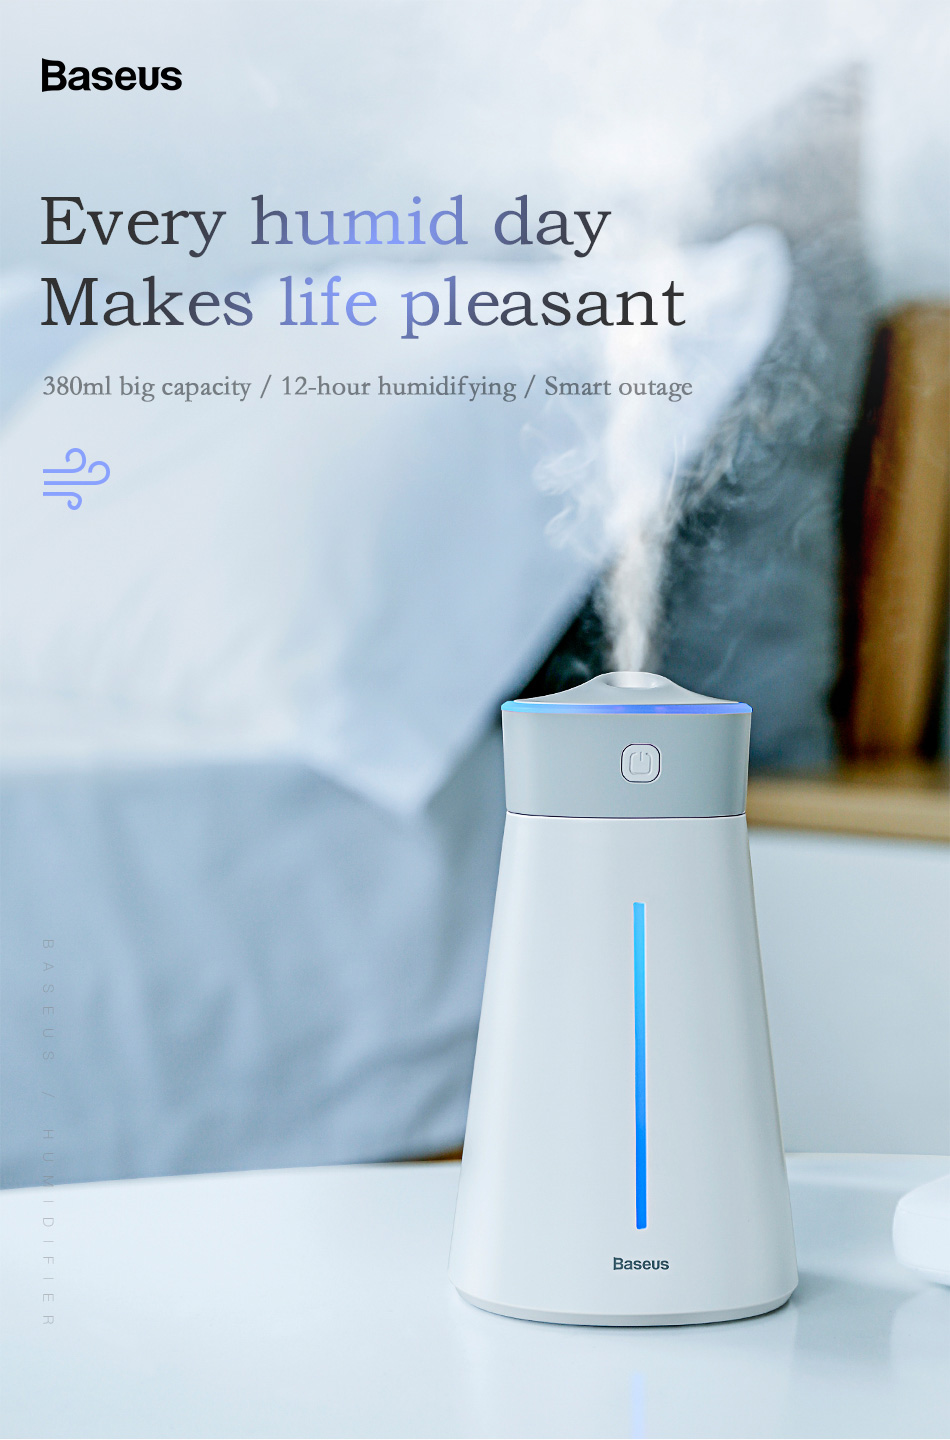 Baseus Air Humidifier Diffuser Mist Maker For Home Office Car Aroma Air Diffuser Humidifier With Colorful Lamp Light Fan